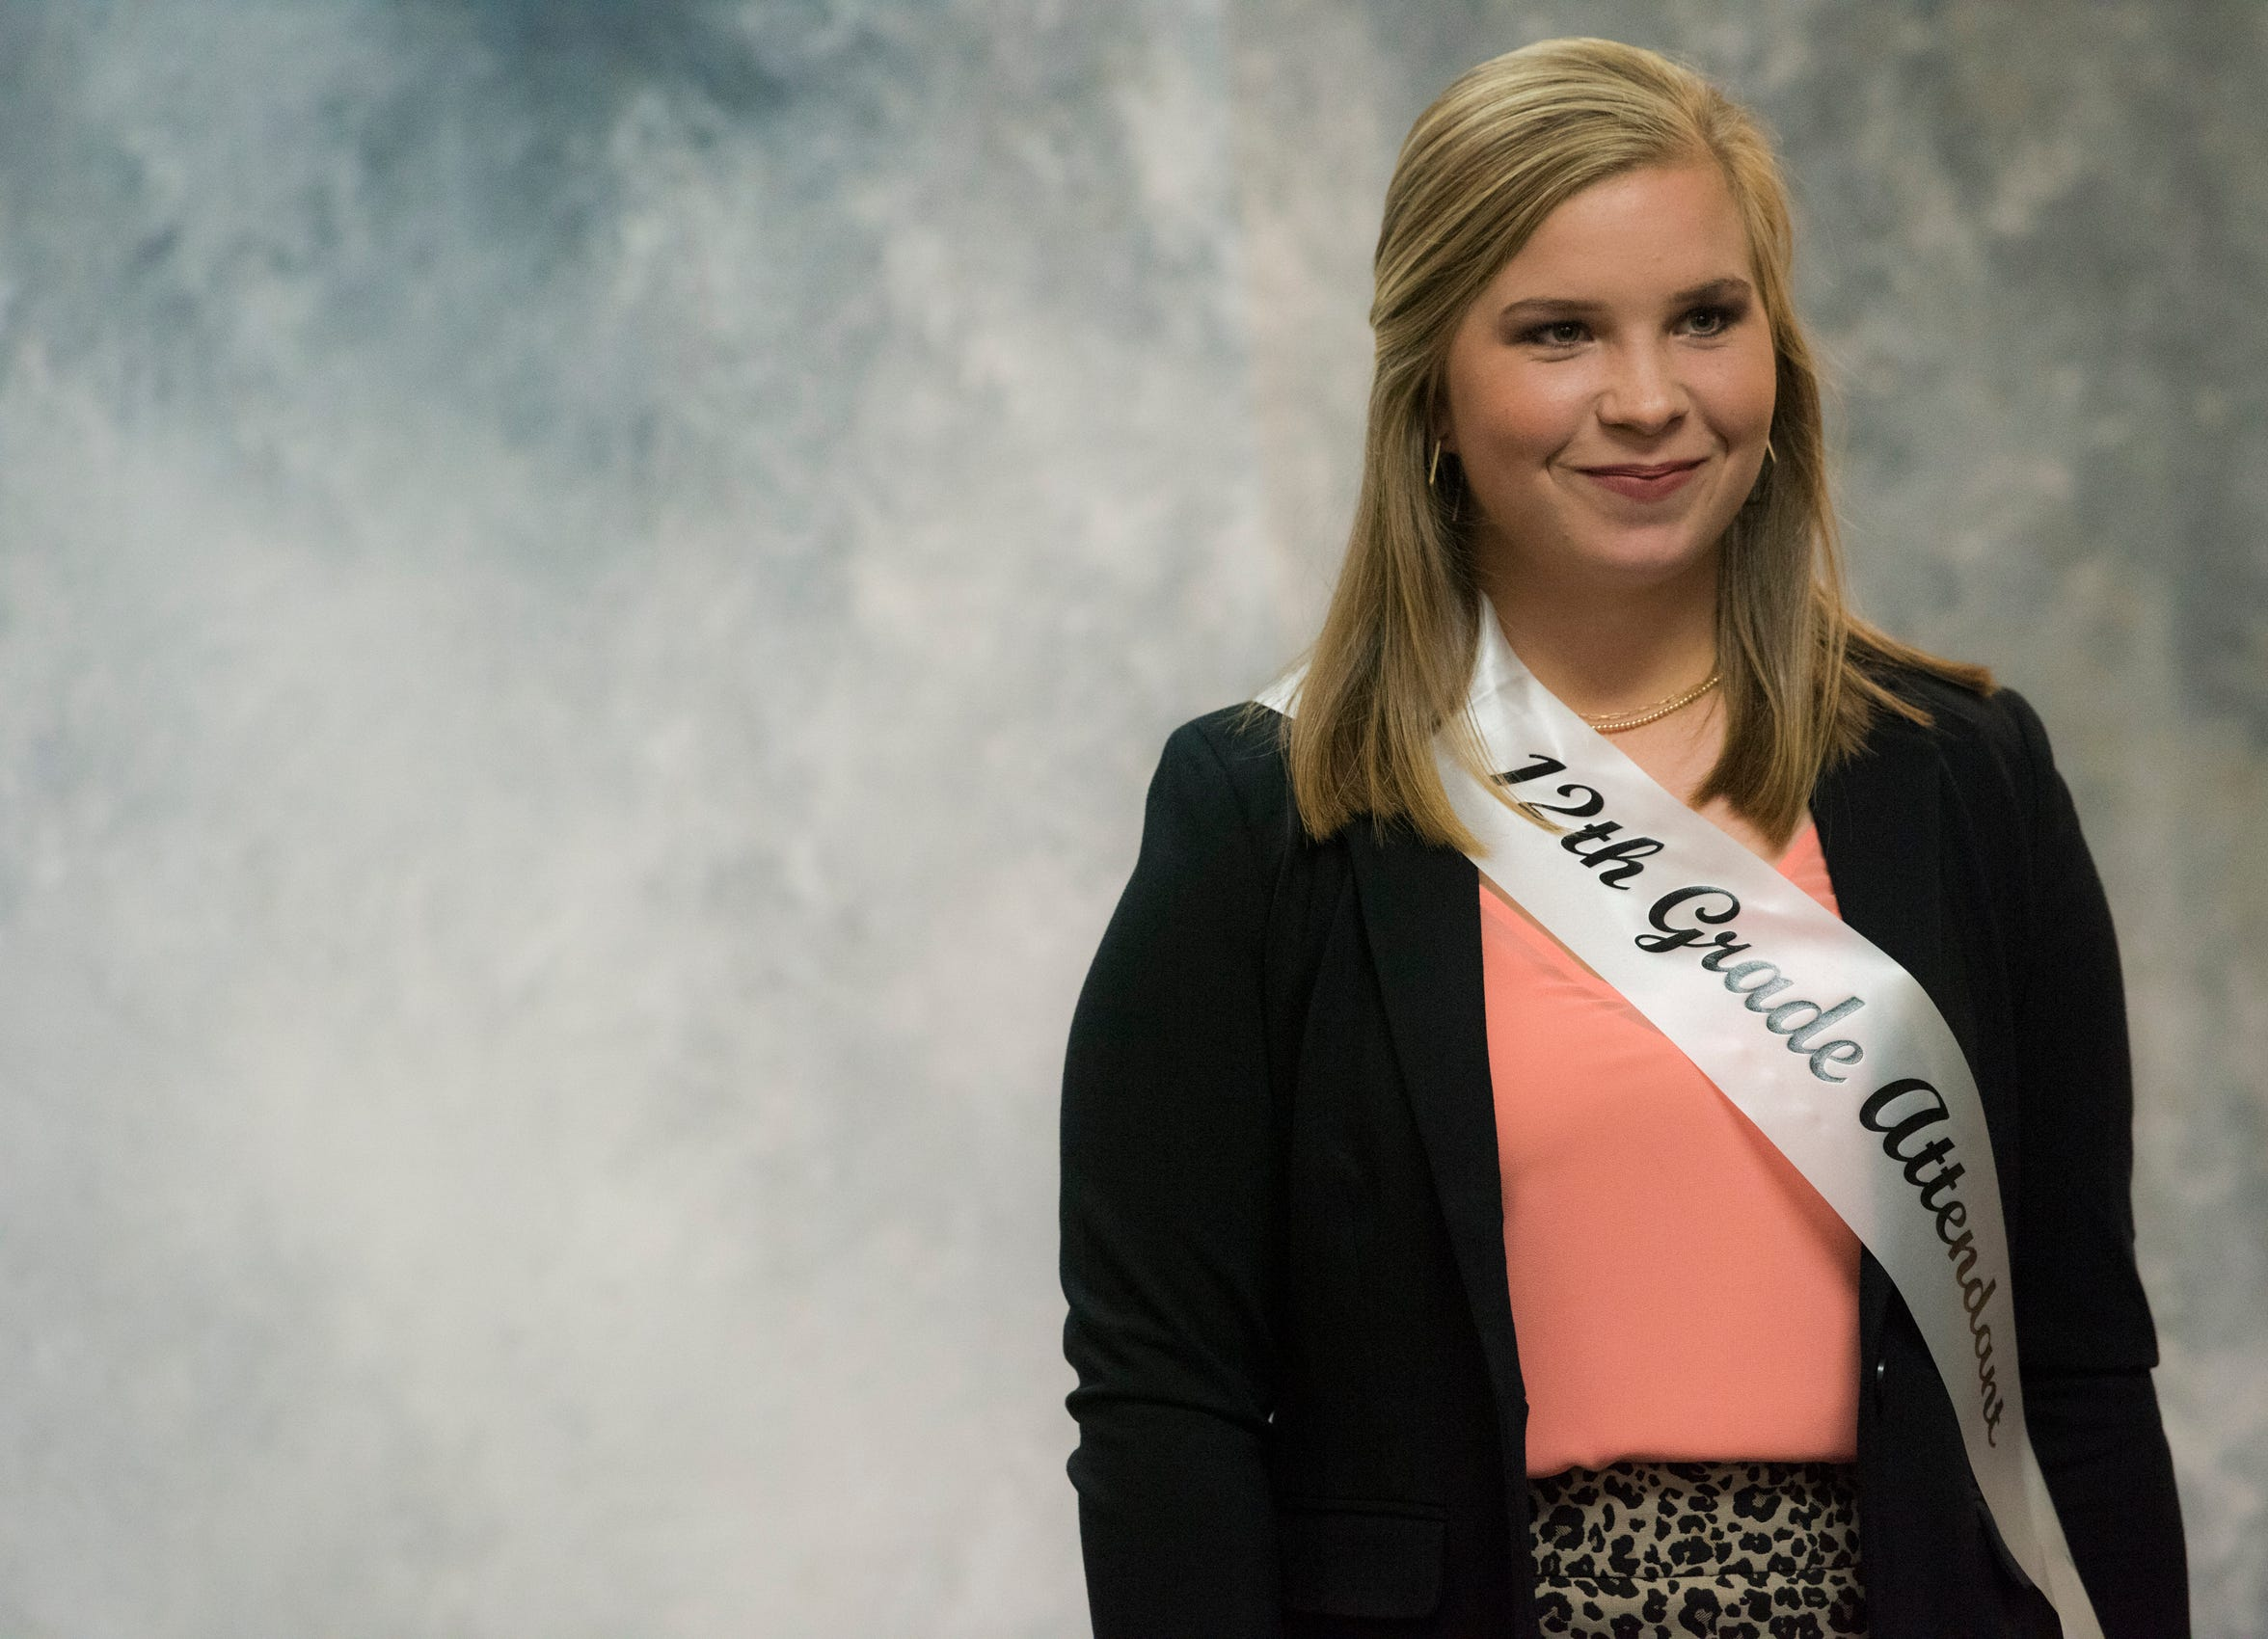 Emma Wendland poses for a picture as part of the homecoming court at Autauga Academy in Prattville, Ala., on Friday, Sept. 27, 2019. Autauga Academy defeated Tuscaloosa Academy 40-16.